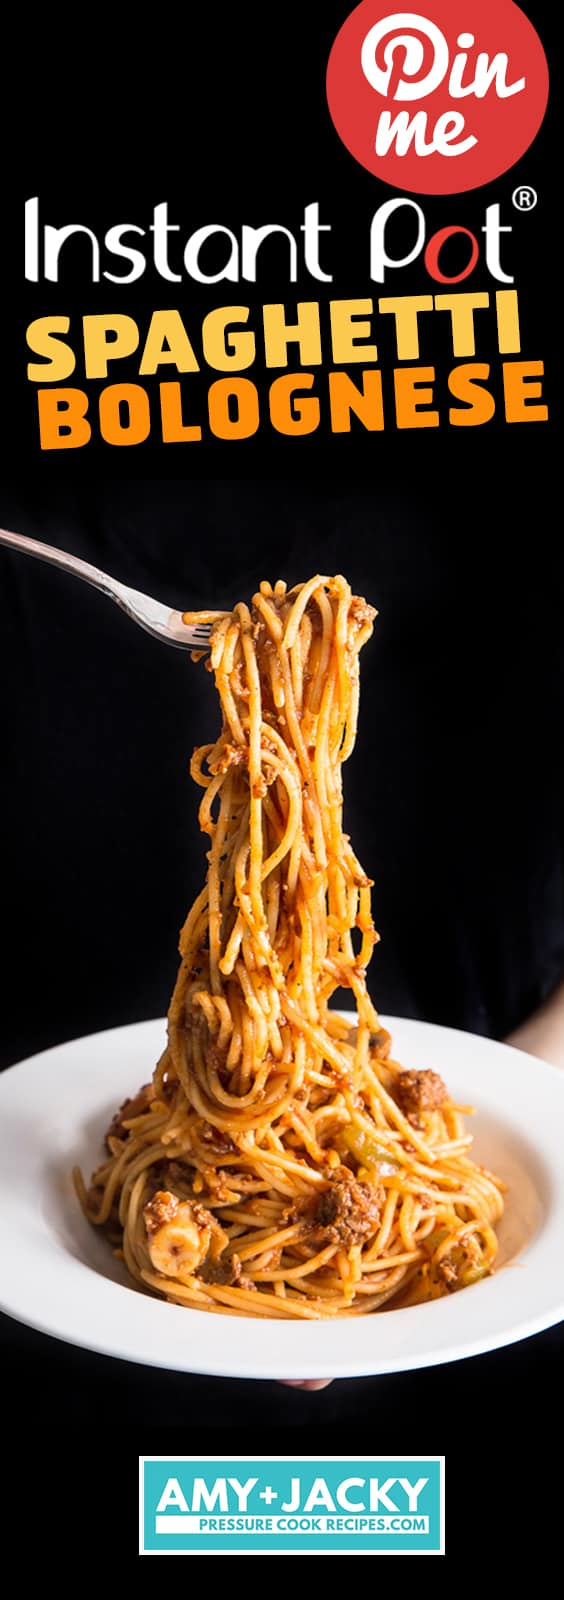 Instant Pot Spaghetti | Instant Pot Spaghetti Bolognese | Pressure Cooker Spaghetti | Pressure Cooker Spaghetti Bolognese | Instant Pot Pasta | Instant Pot Ground Beef | Instant Pot Recipes | One Pot Meals | Meat Sauce #instantpot #pressurecooker #recipes #easydinner #dinner